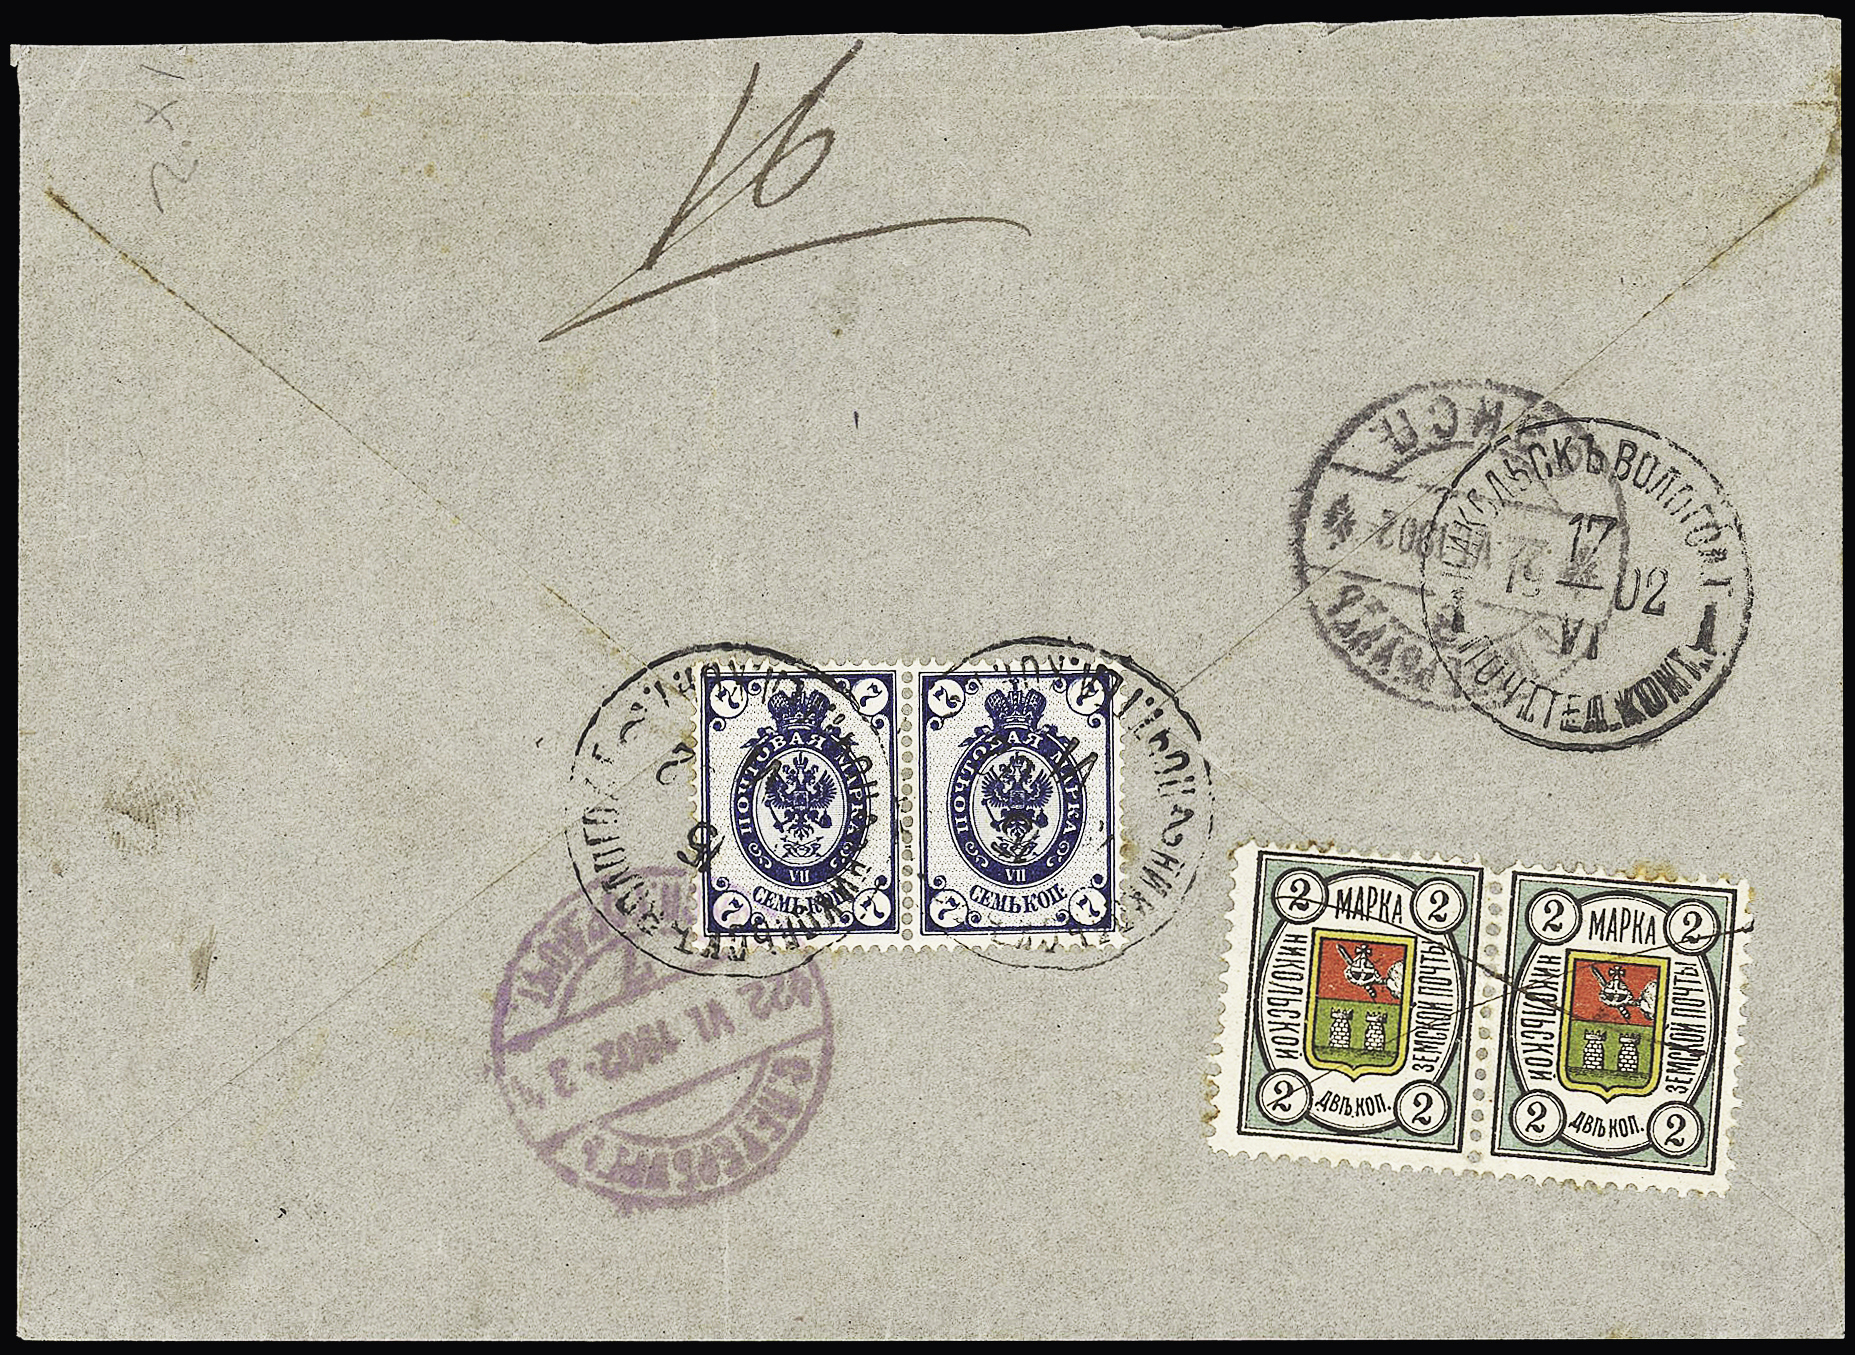 Lot 497 - Eastern Europe » RUSSIA - ZEMSTVOS » Nikolsk (Vologda Government)  -  Le Timbre Classique SA SALE ON OFFERS N ° 37 PARIS